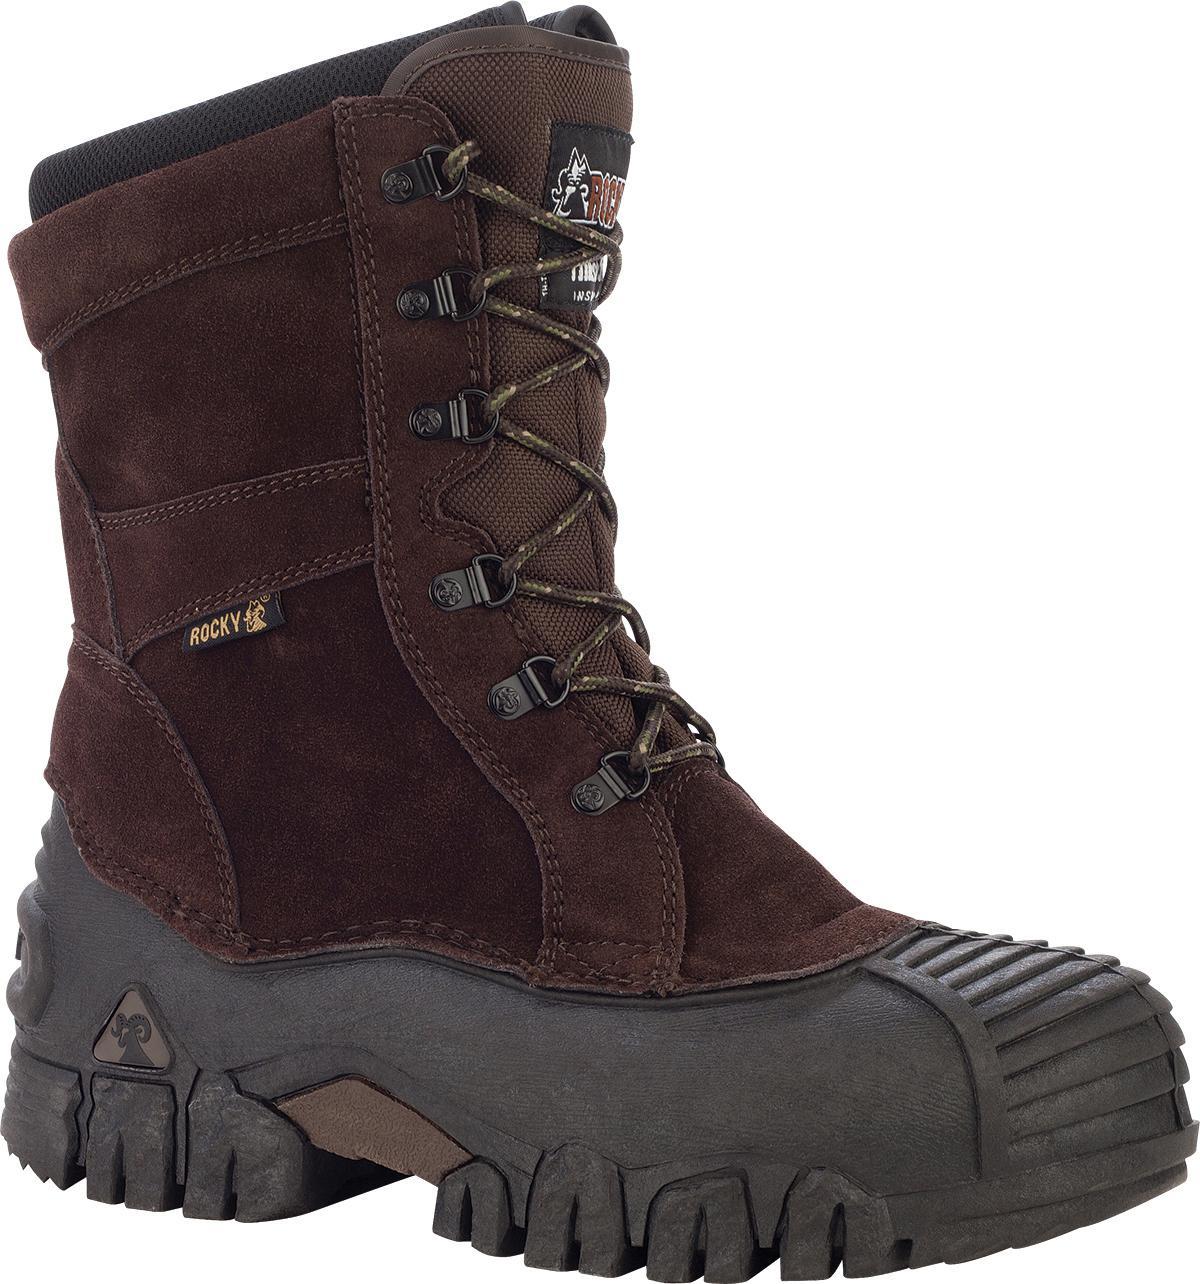 "Rocky 8"" Jasper Trac Insulated Outdoor Boots  00004799"